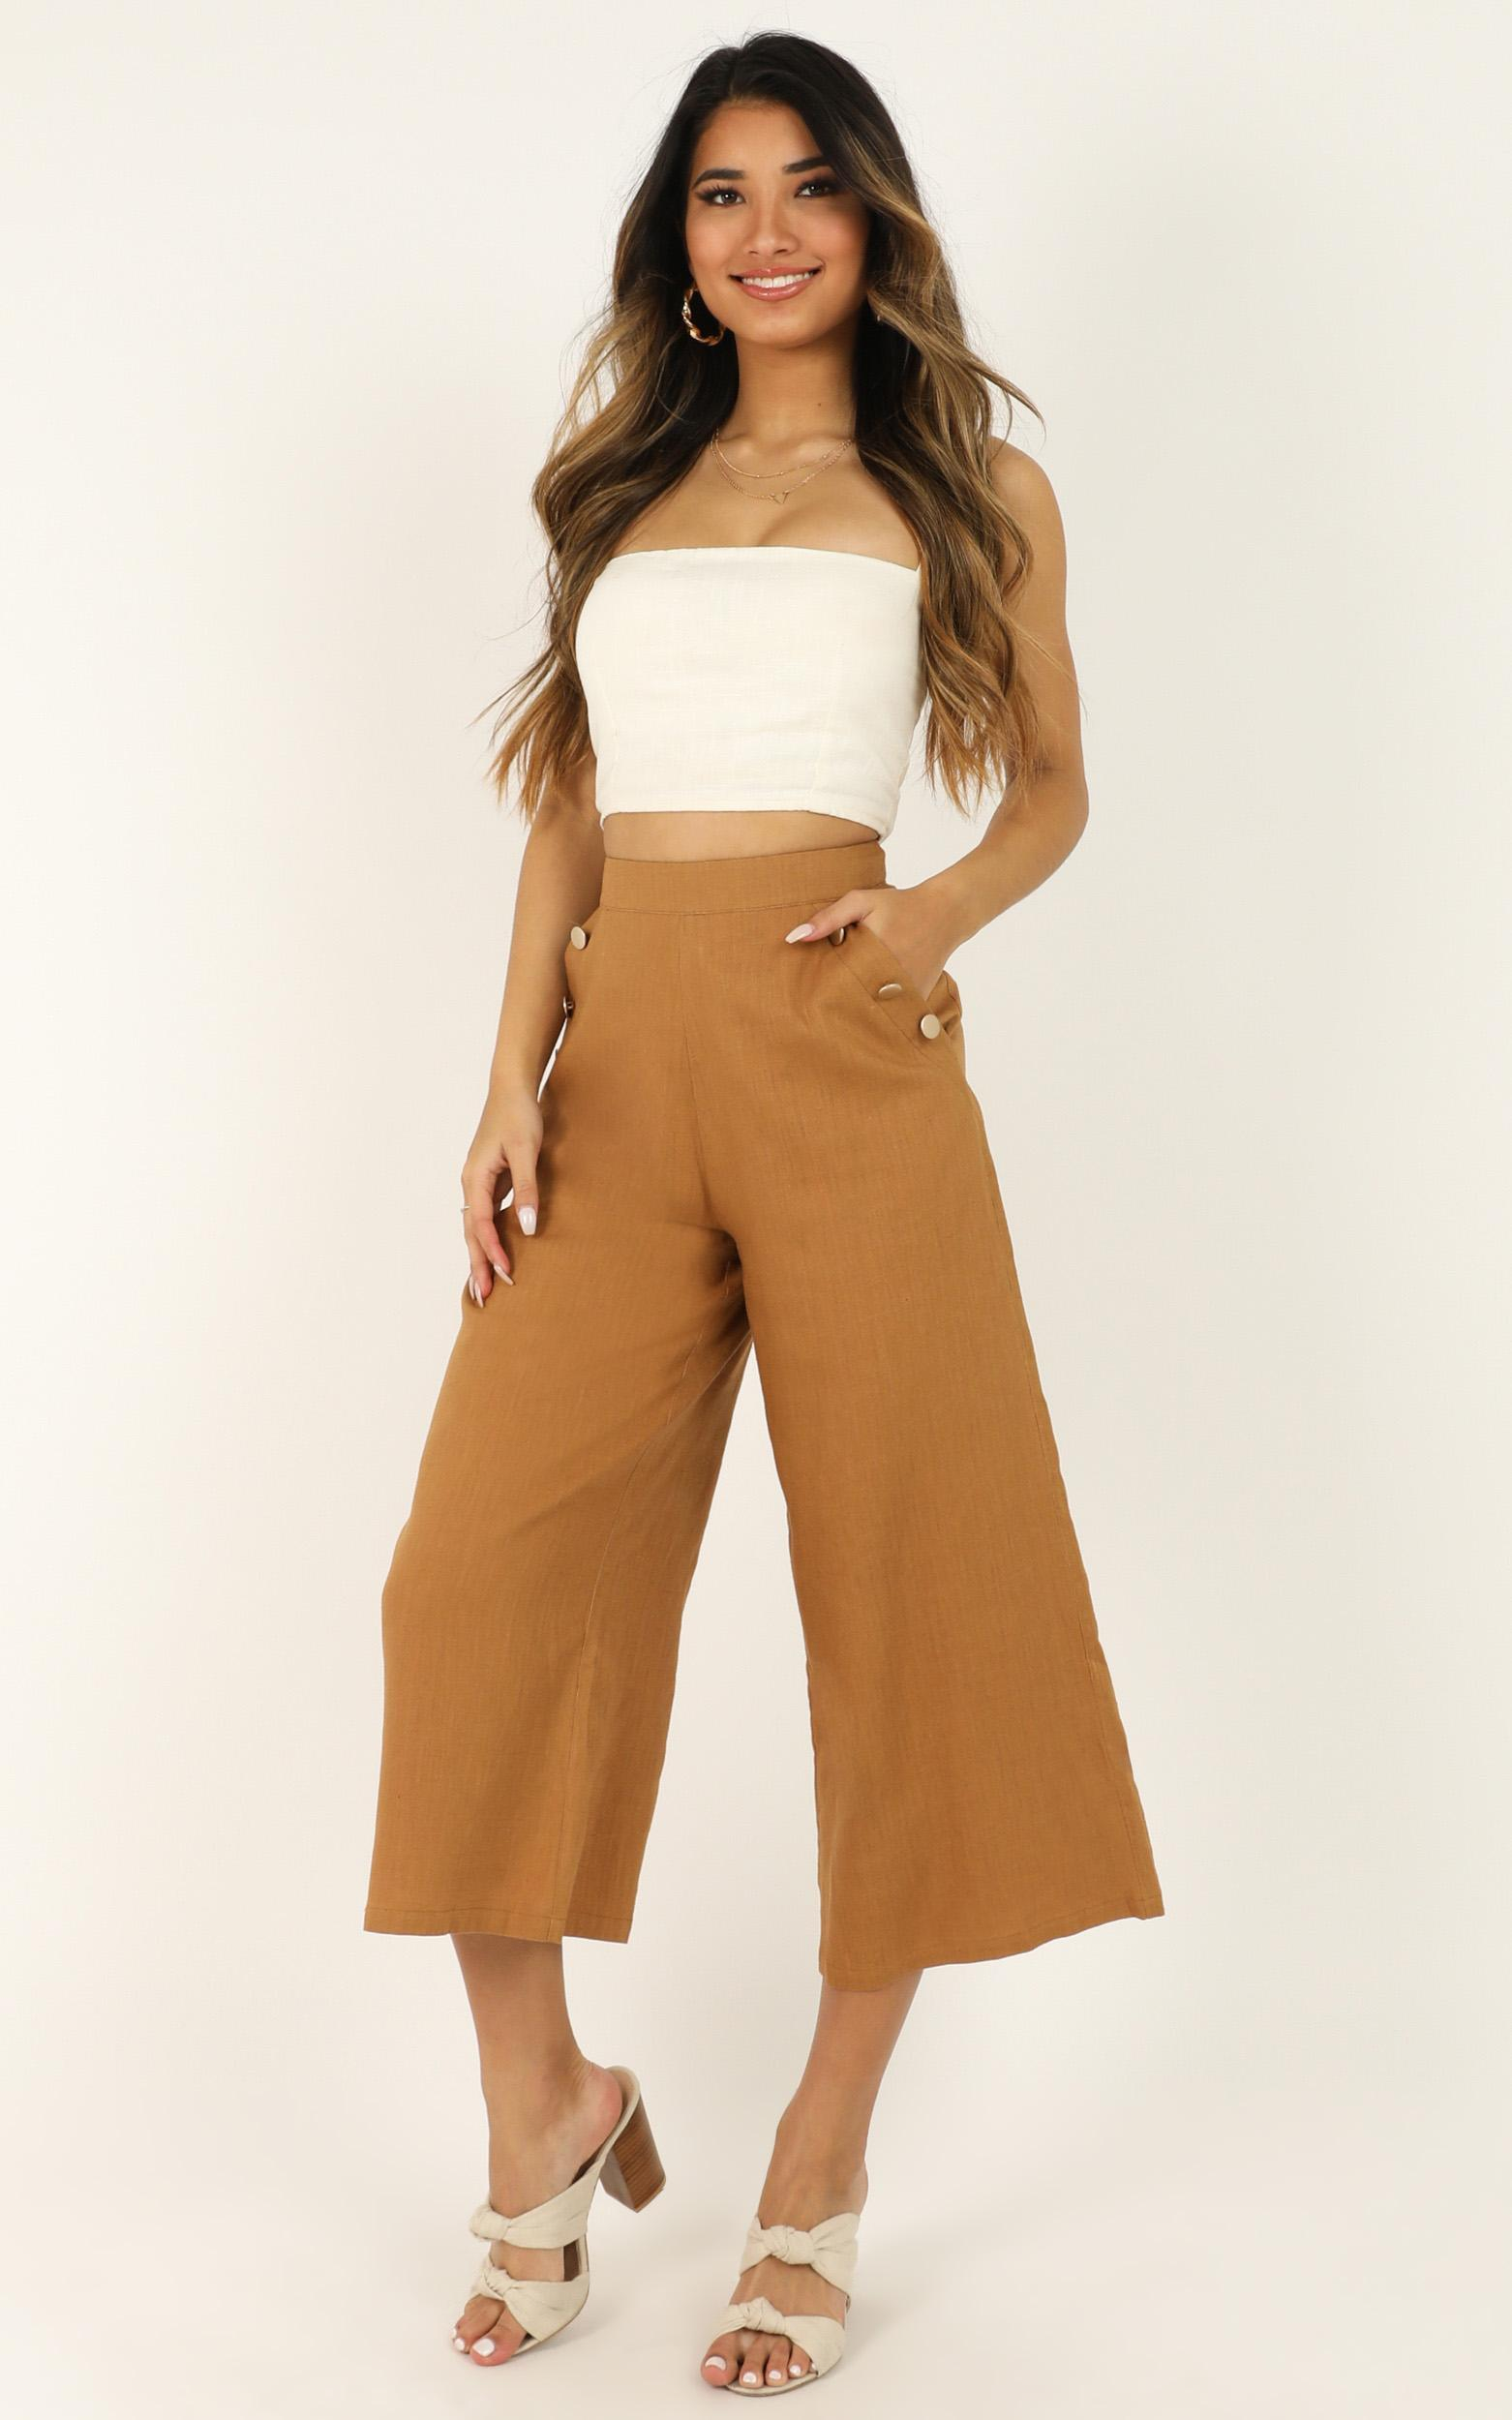 Waiting All Night Pants In tan linen look - 16 (XXL), Tan, hi-res image number null